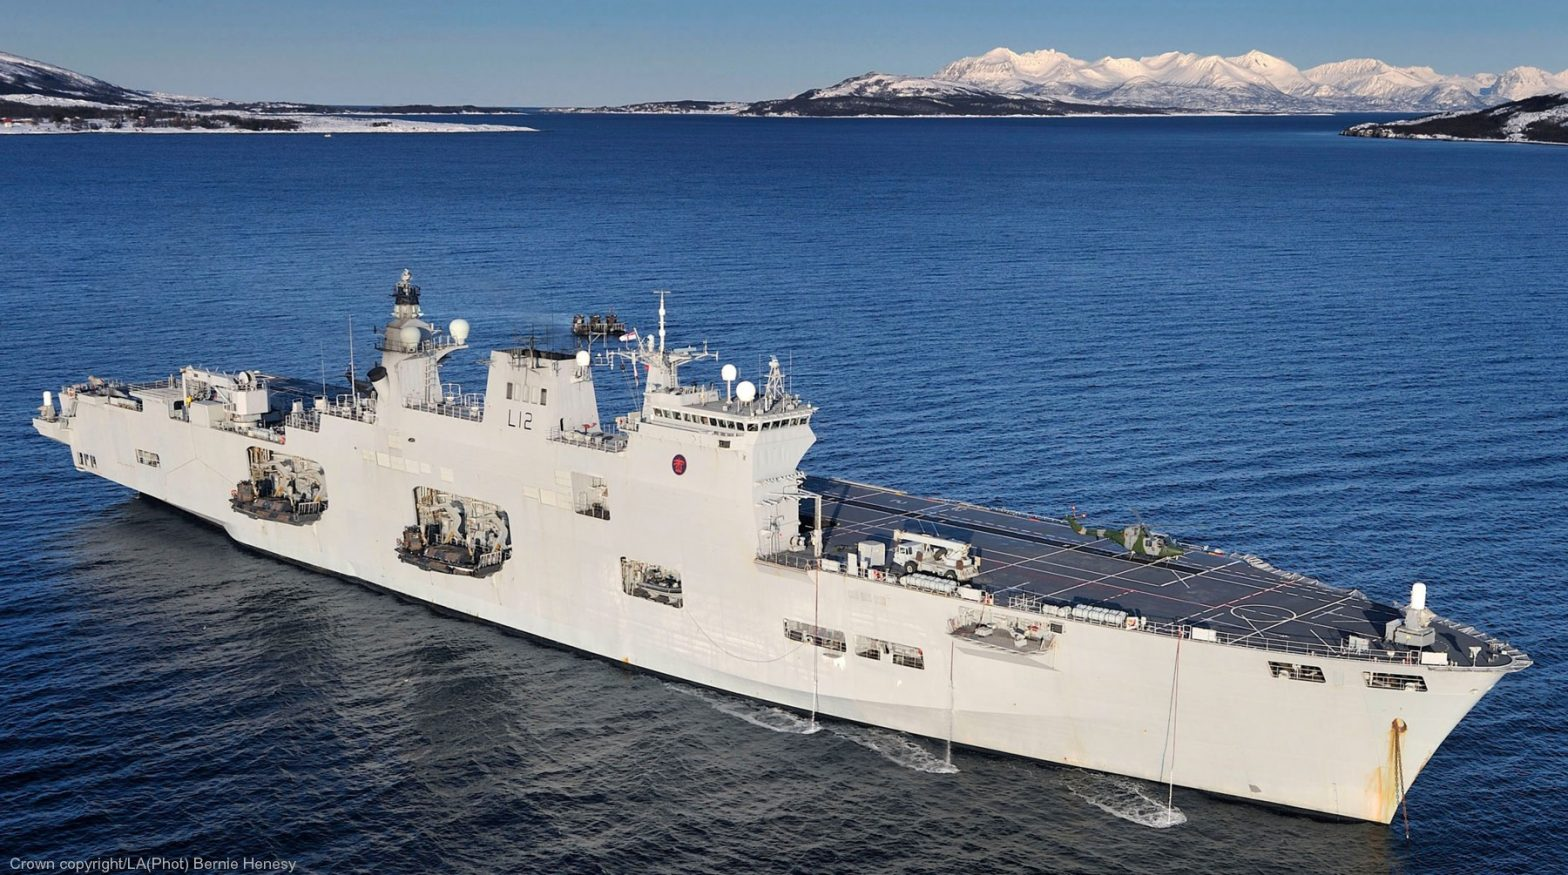 Is Turkey a potential buyer for HMS Ocean, the Flagship of Royal Navy?